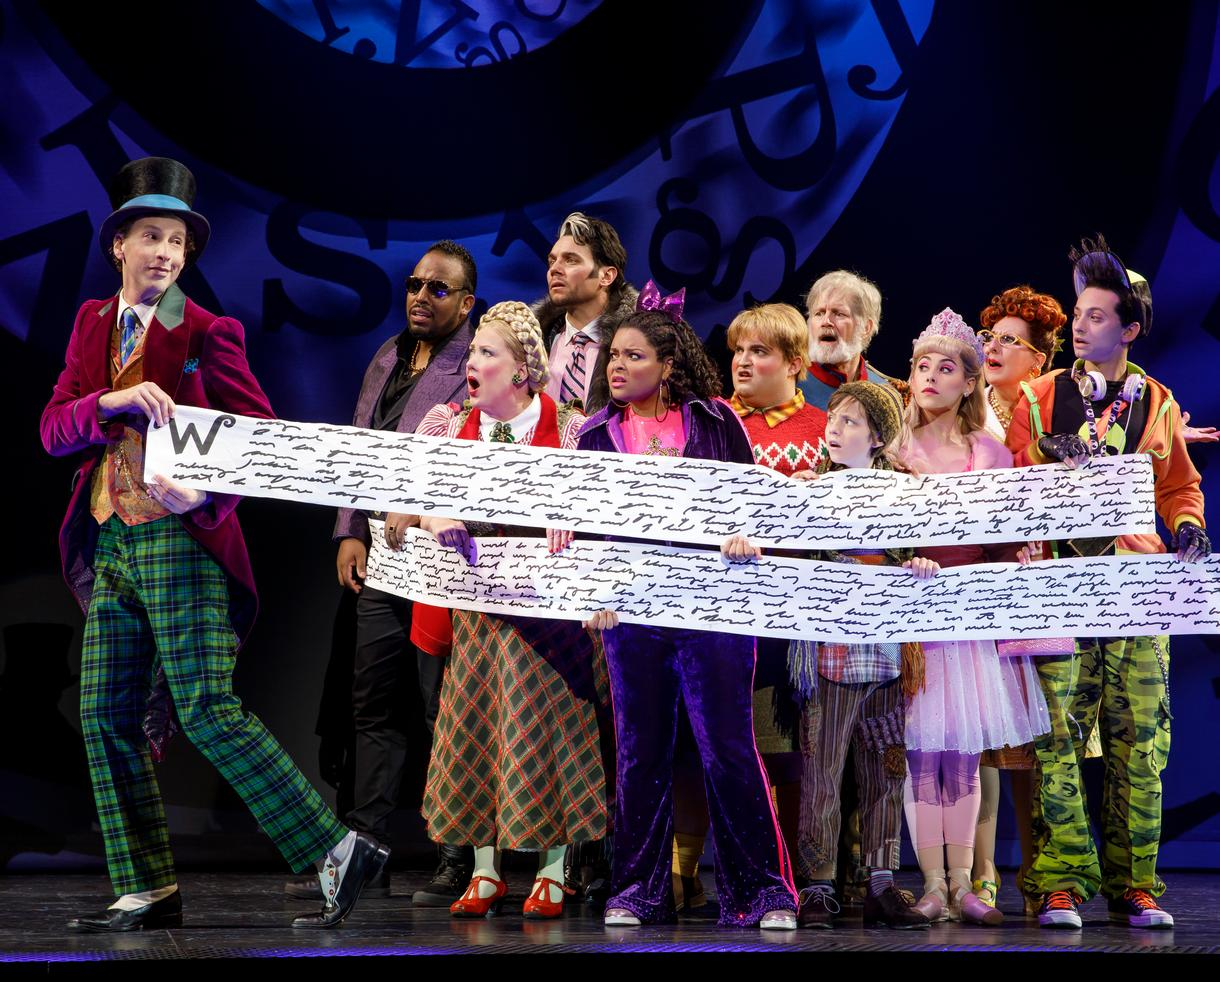 Roald Dahl's Charlie and the Chocolate Factory at the Oriental Theatre